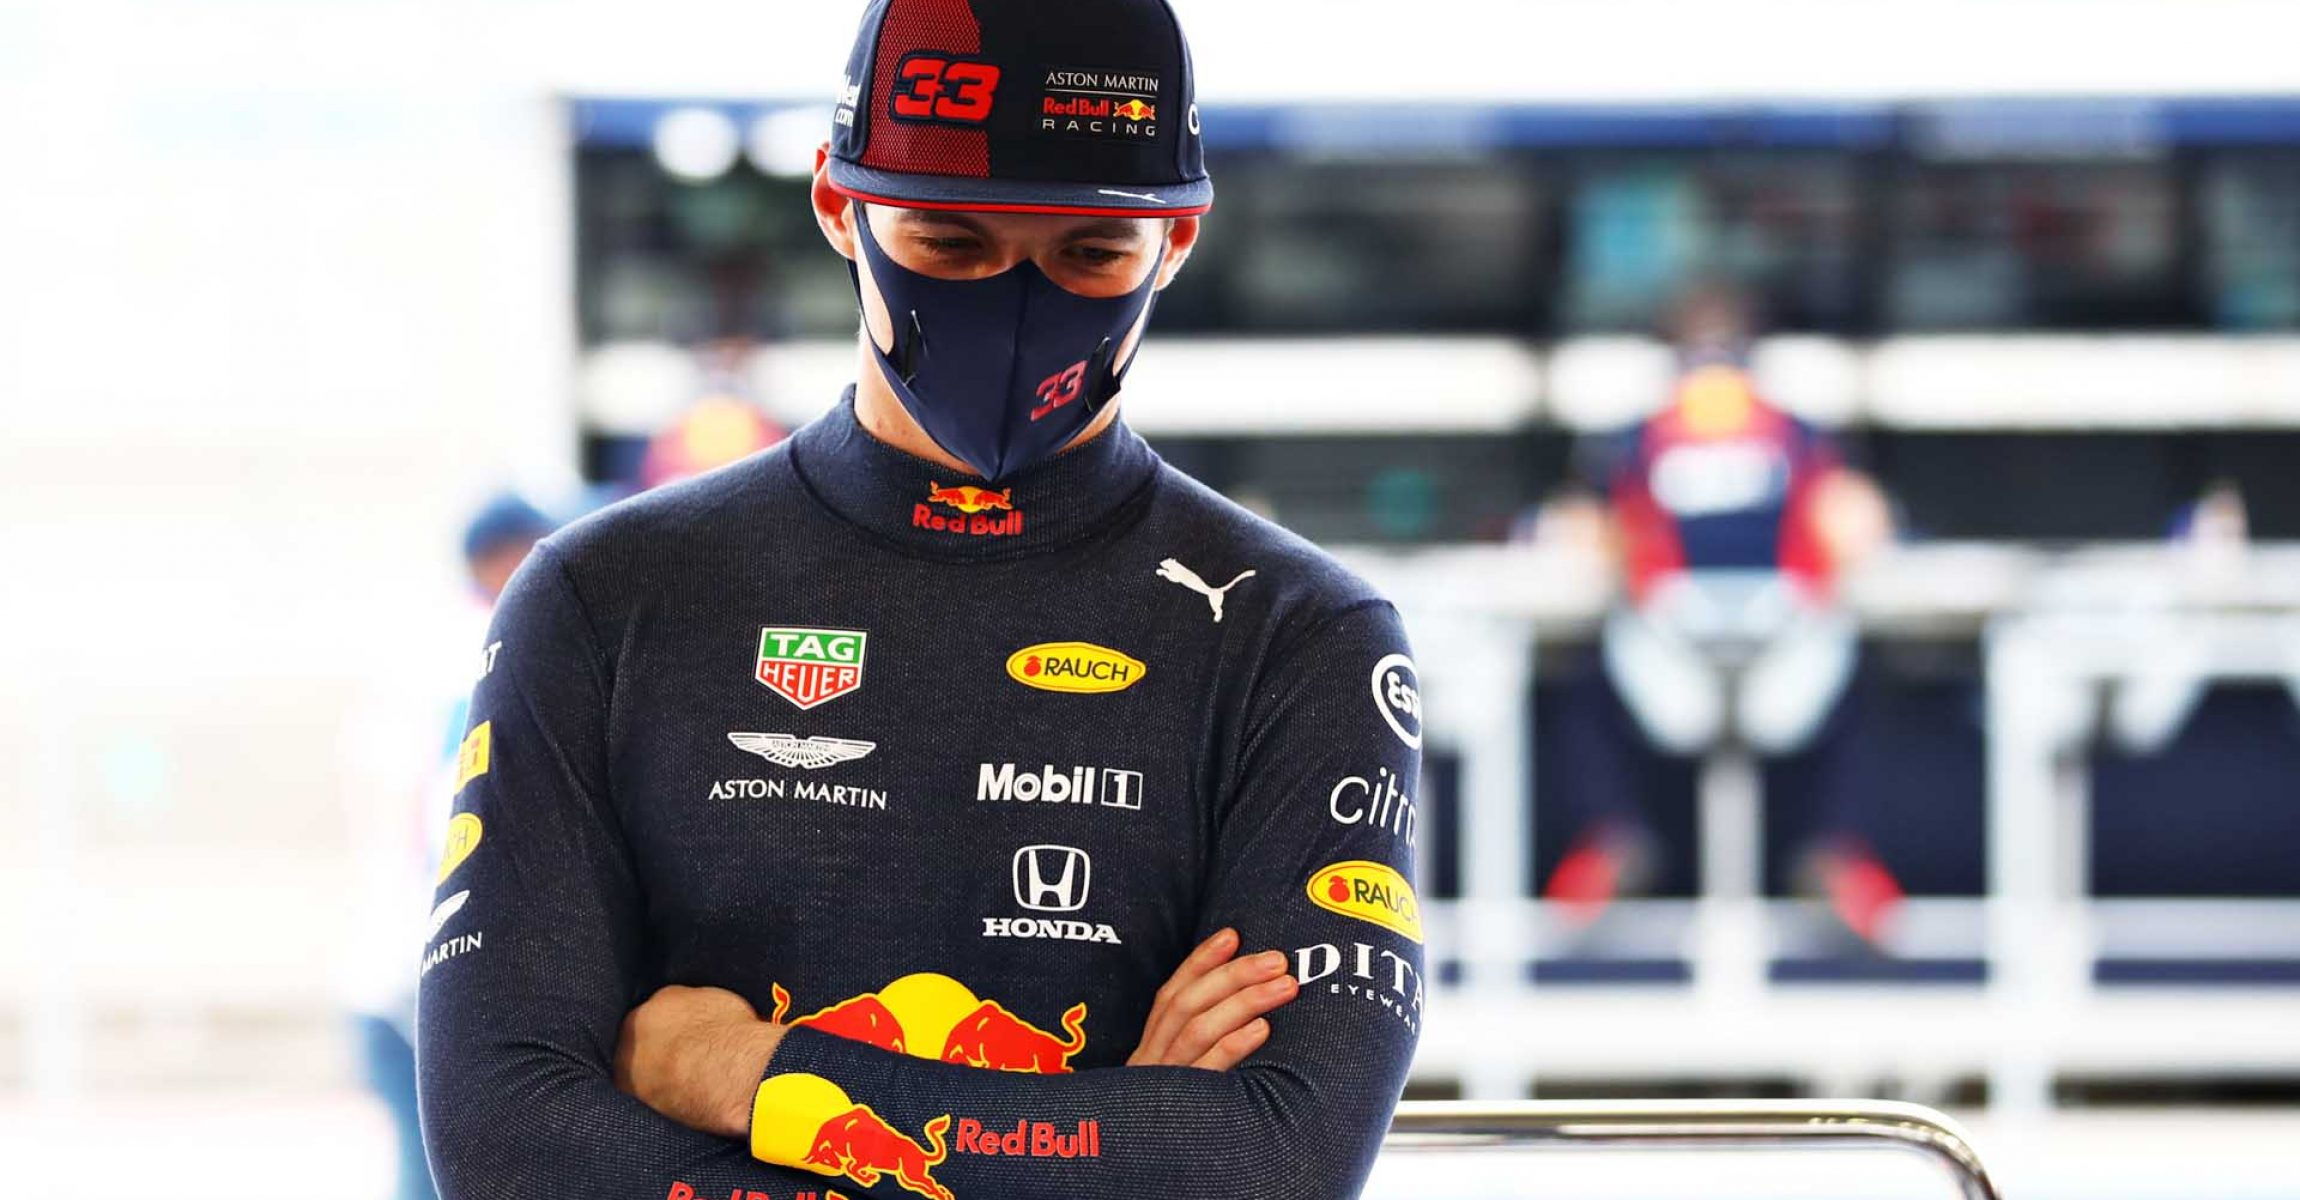 BAHRAIN, BAHRAIN - NOVEMBER 28: Max Verstappen of Netherlands and Red Bull Racing looks on in the garage during final practice ahead of the F1 Grand Prix of Bahrain at Bahrain International Circuit on November 28, 2020 in Bahrain, Bahrain. (Photo by Mark Thompson/Getty Images)